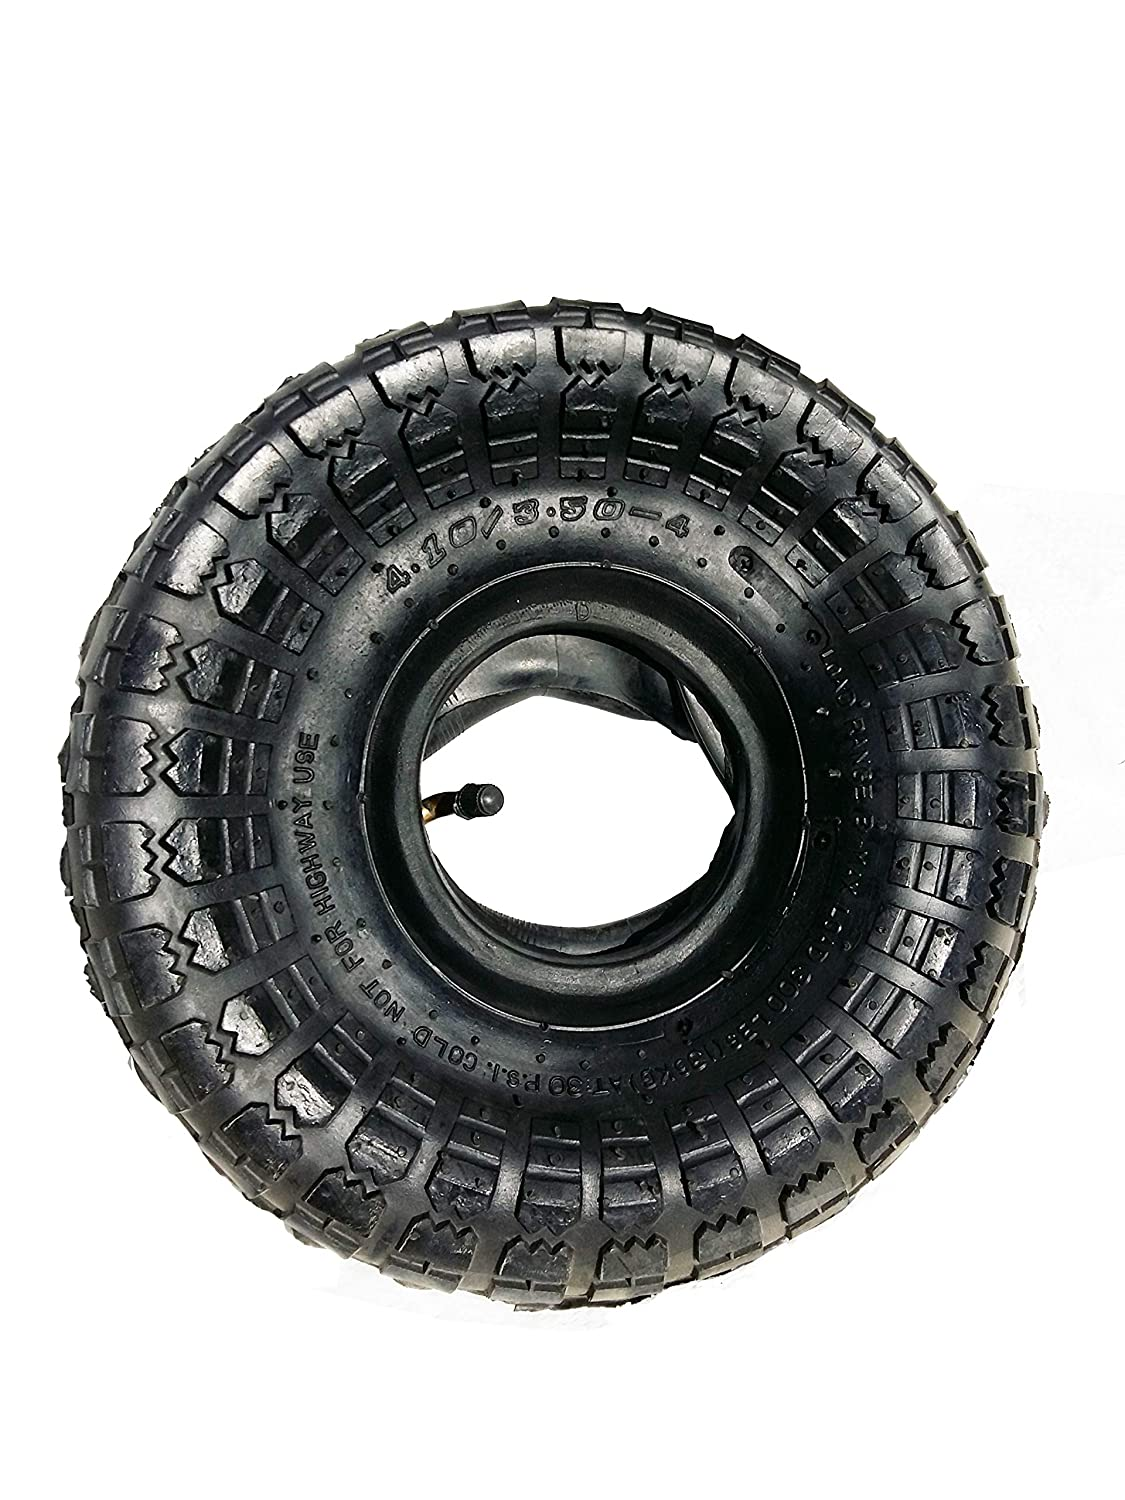 4.10/3.50-4 Tire and Tube Set for Wheelbarrow and Hand Truck Wheels 10